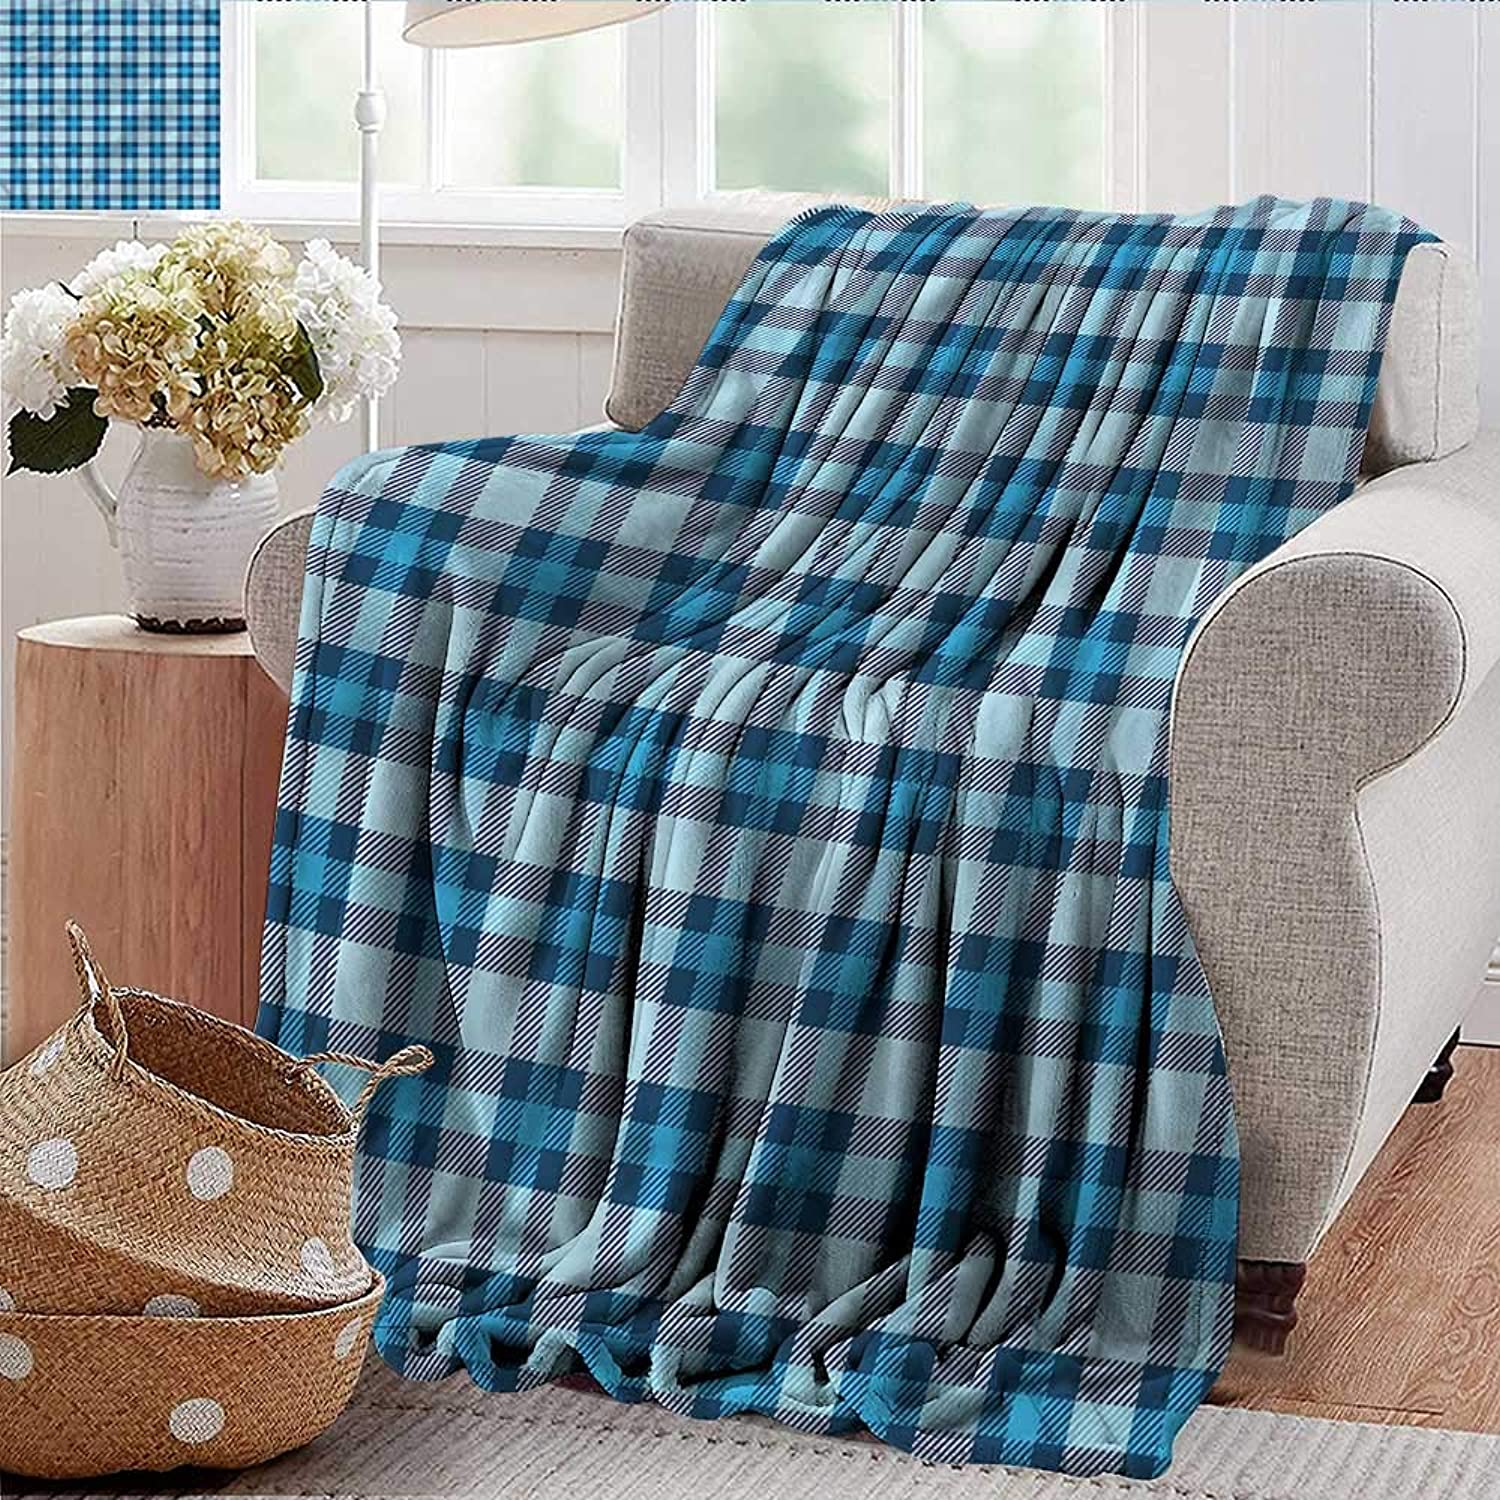 Xaviera Doherty Weighted Blanket for Kids Checkered,Picnic Tile in bluee Soft Summer Cooling Lightweight Bed Blanket 50 x60